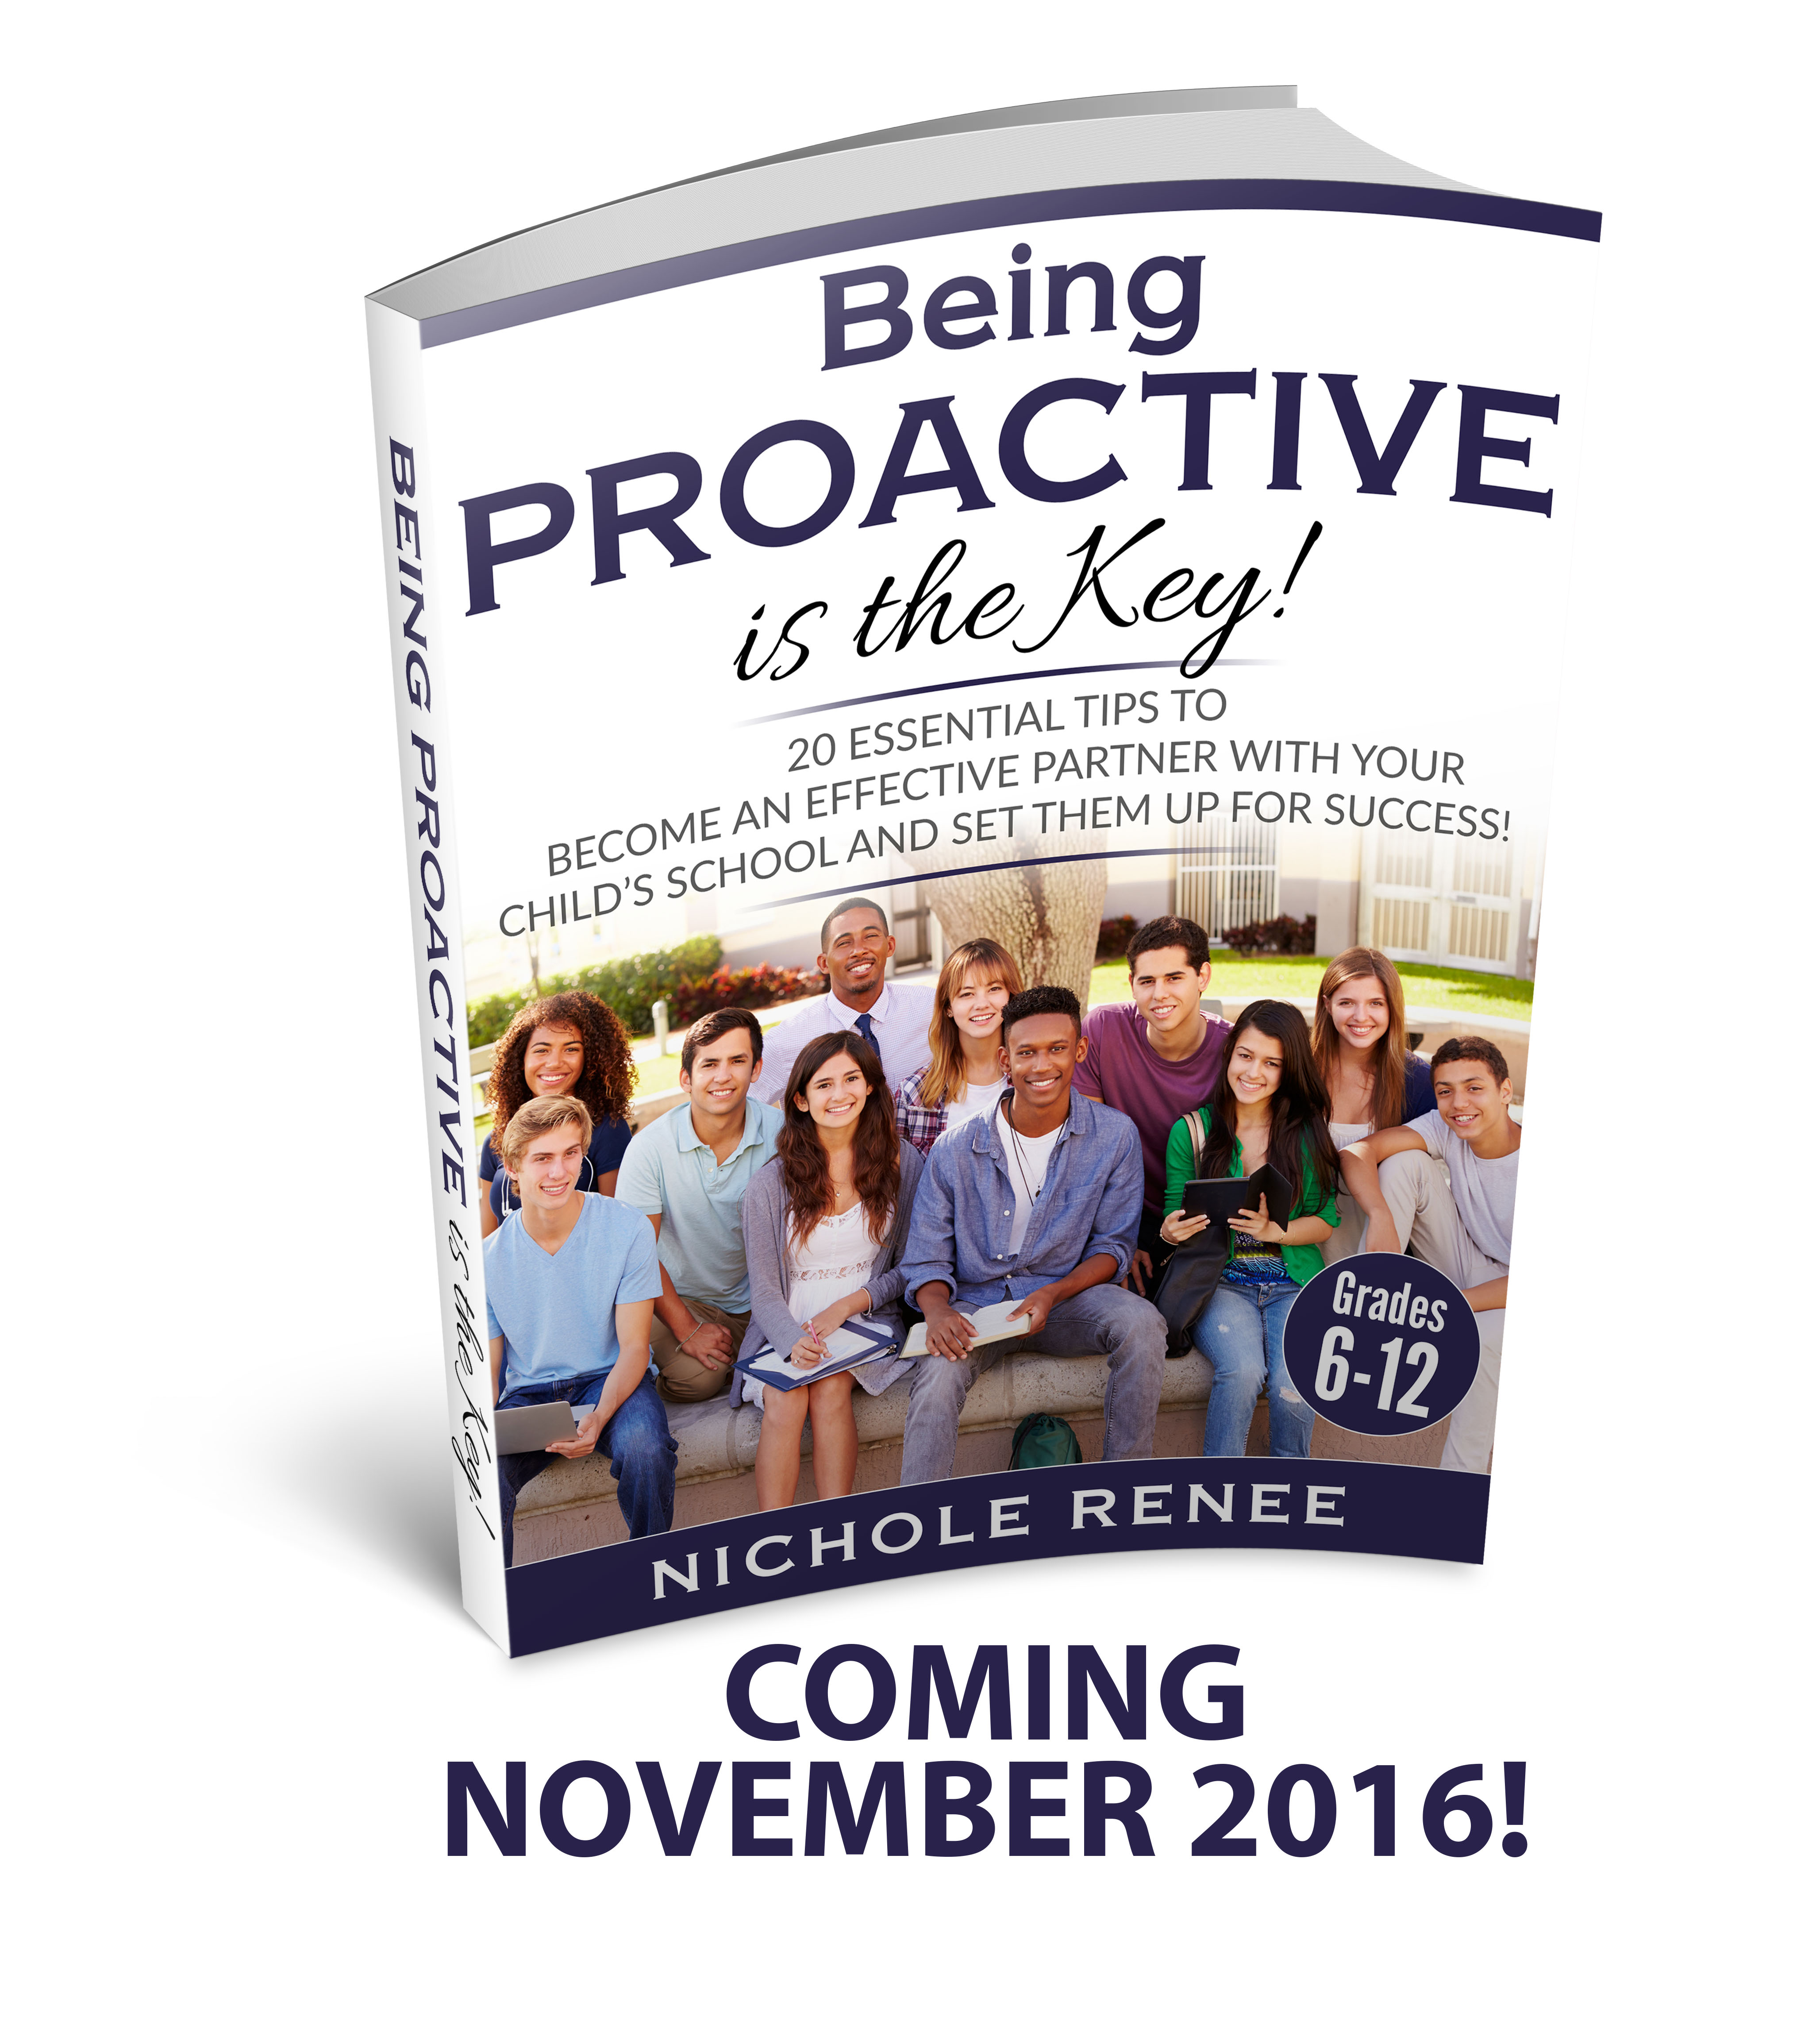 Proactive dating